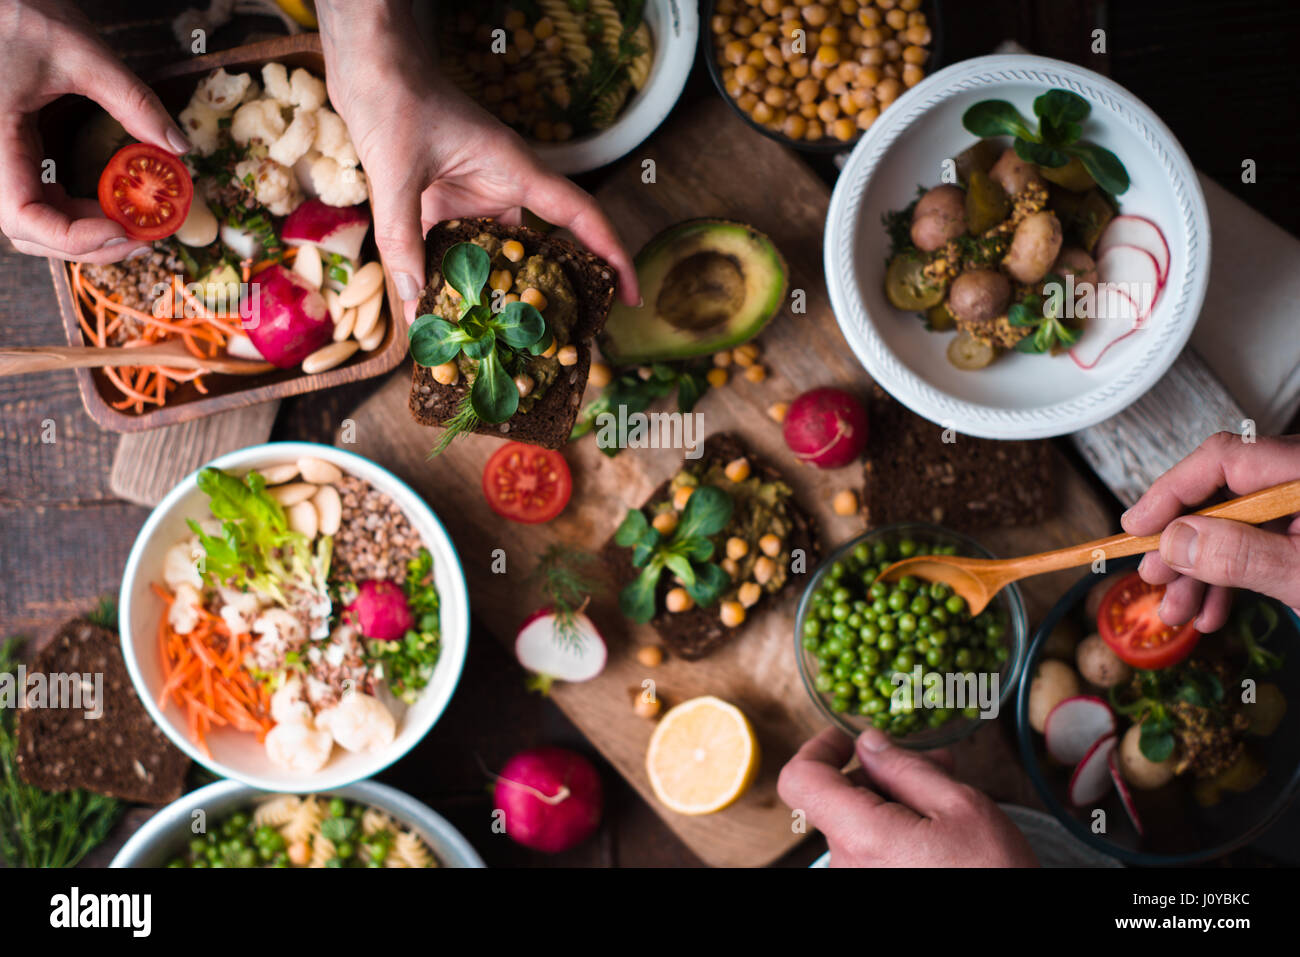 Eating different salad and appetizer on the wooden table top view - Stock Image